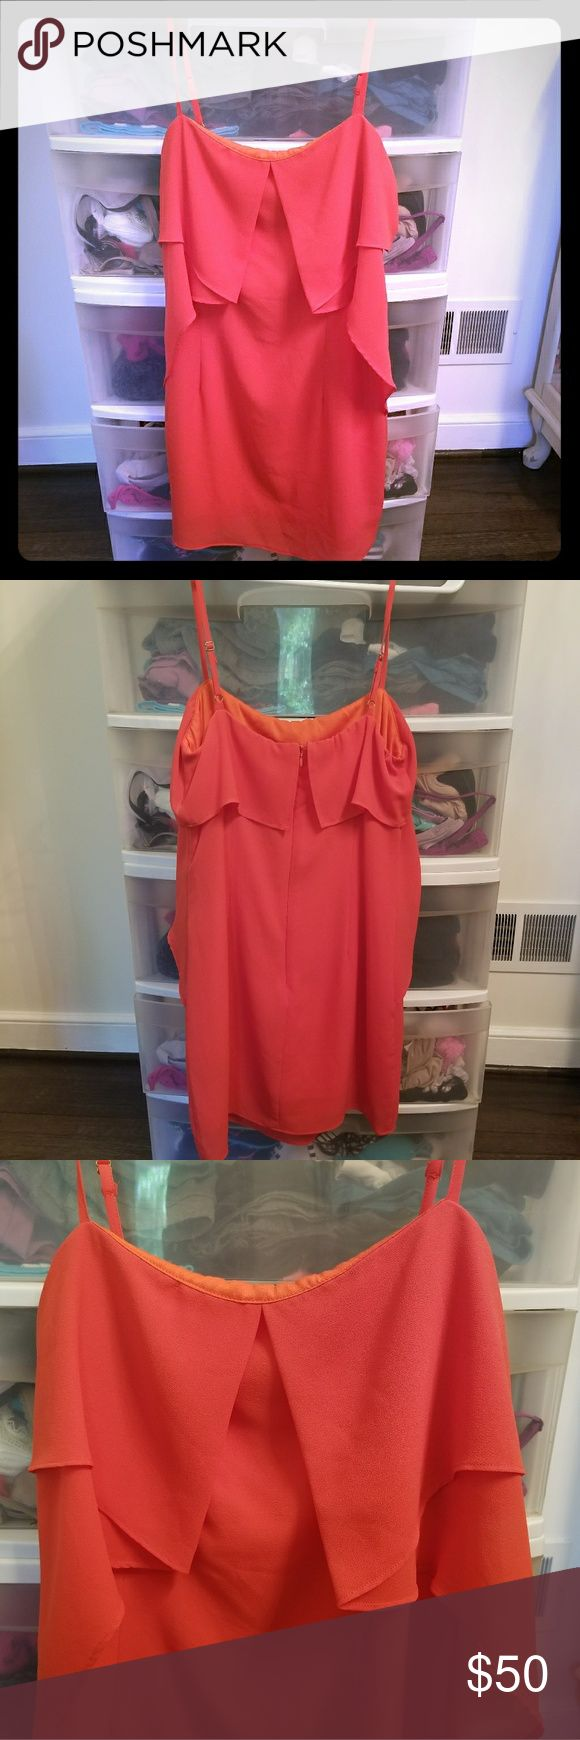 Gorgeous orange party dress! This fun and flirty mini party dress males a great girls night out or bachelorette party dress! Worn once, excellent condition. Fits snug but has a fun flowing top. Ark & Co Dresses Mini